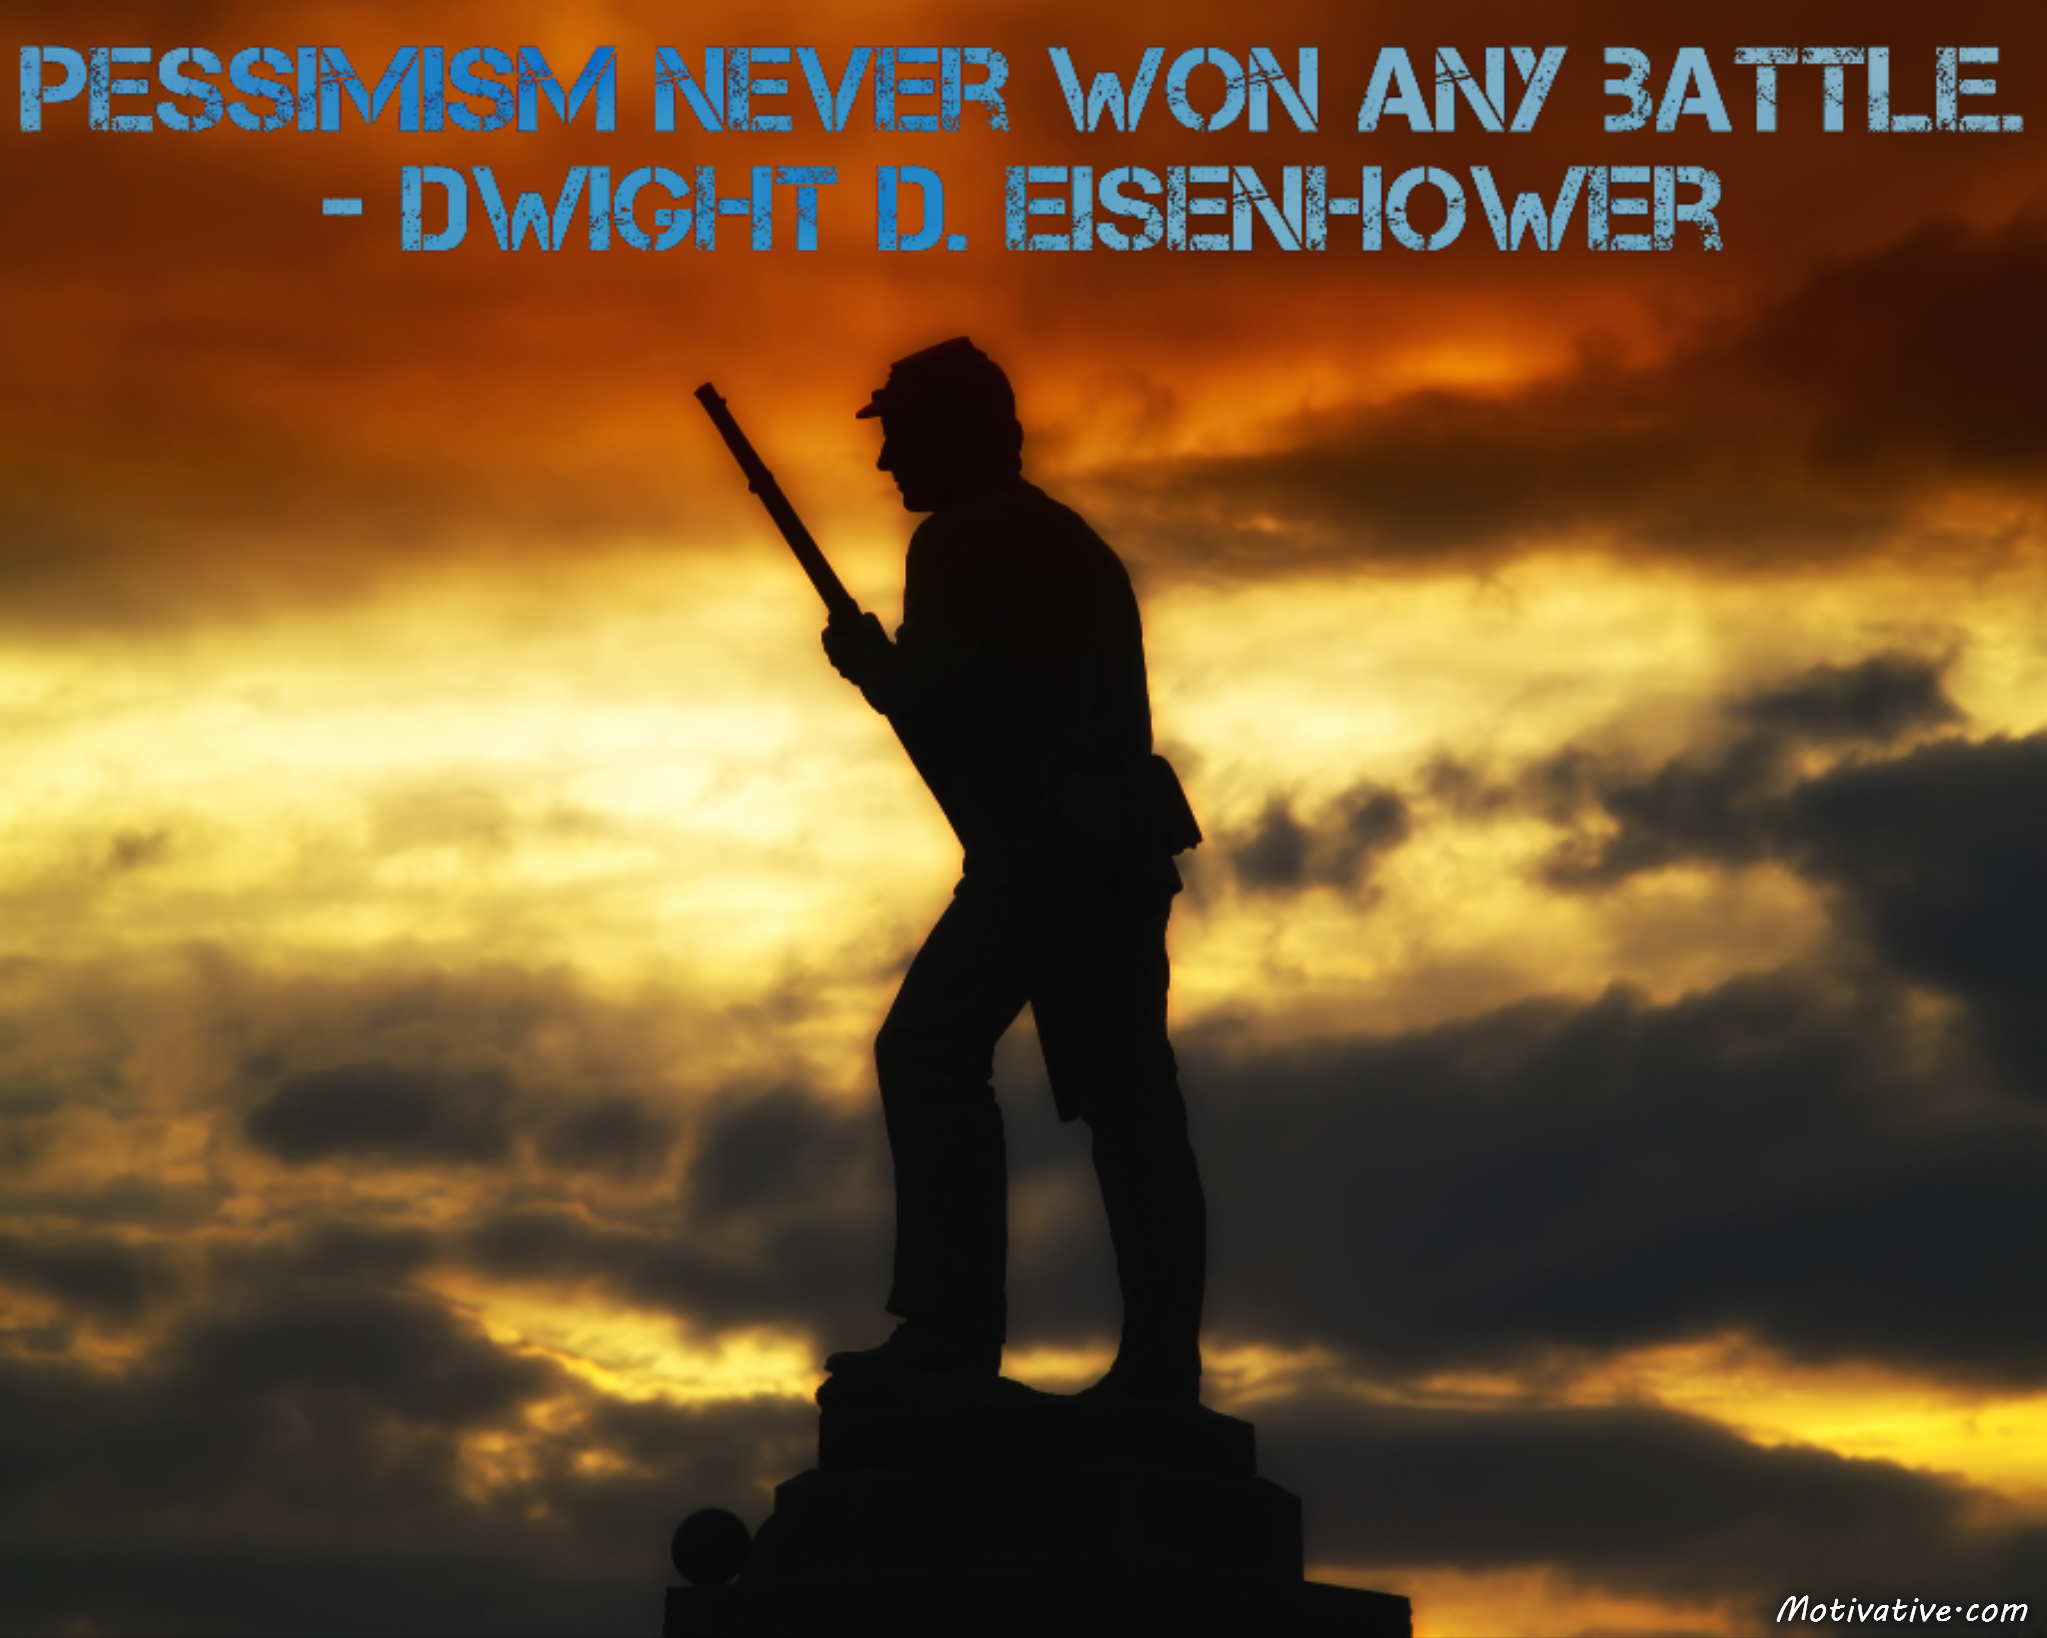 Pessimism never won any battle. – Dwight D. Eisenhower